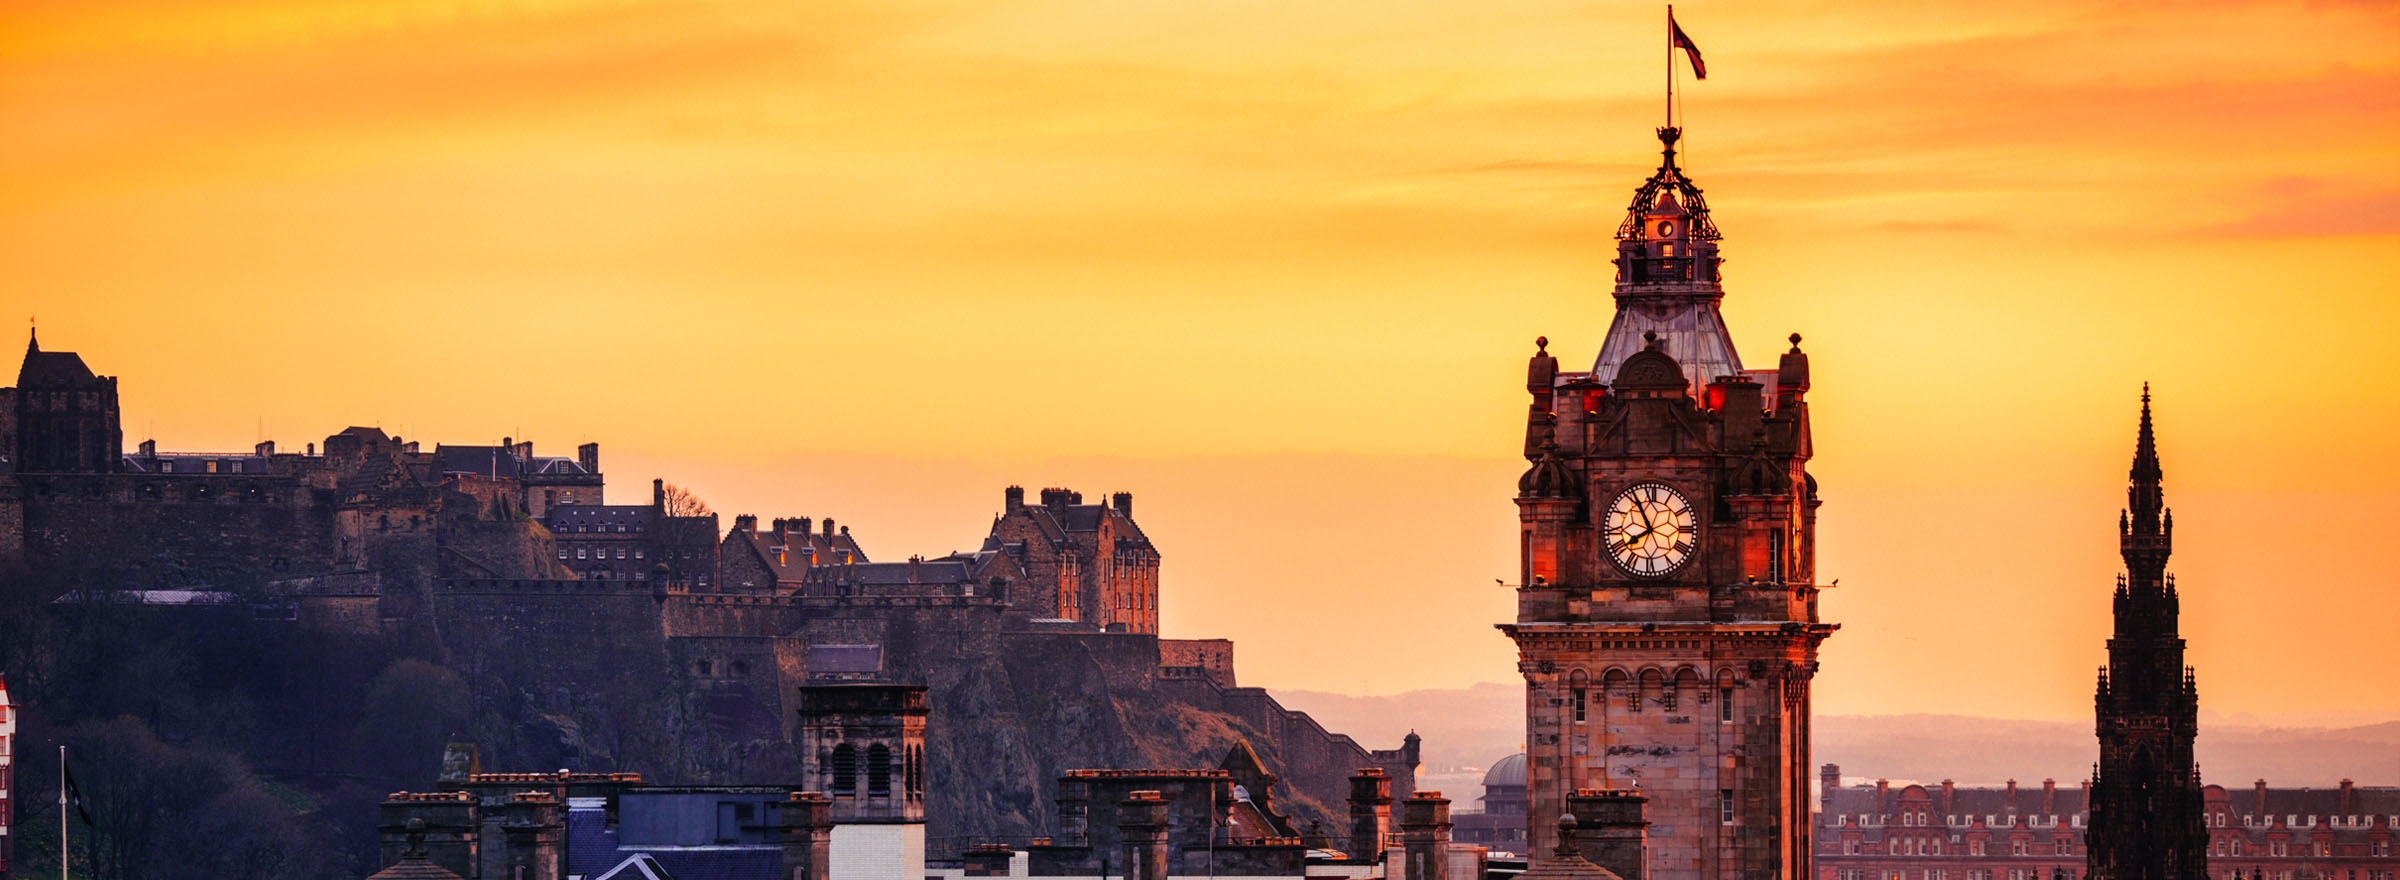 Student cities: studying in Edinburgh